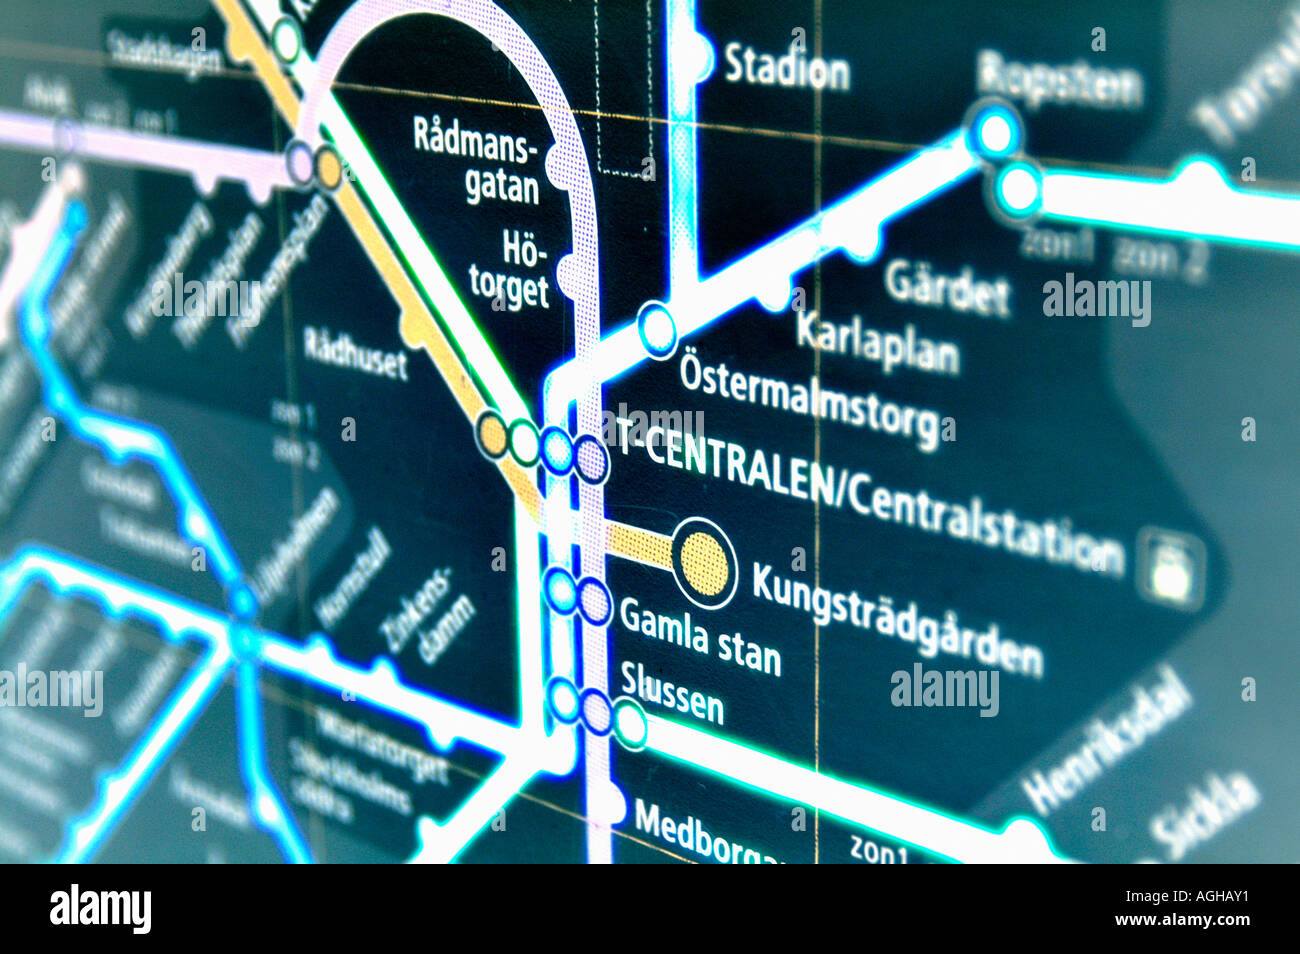 subway map of Stockholm city, Sweden - Stock Image